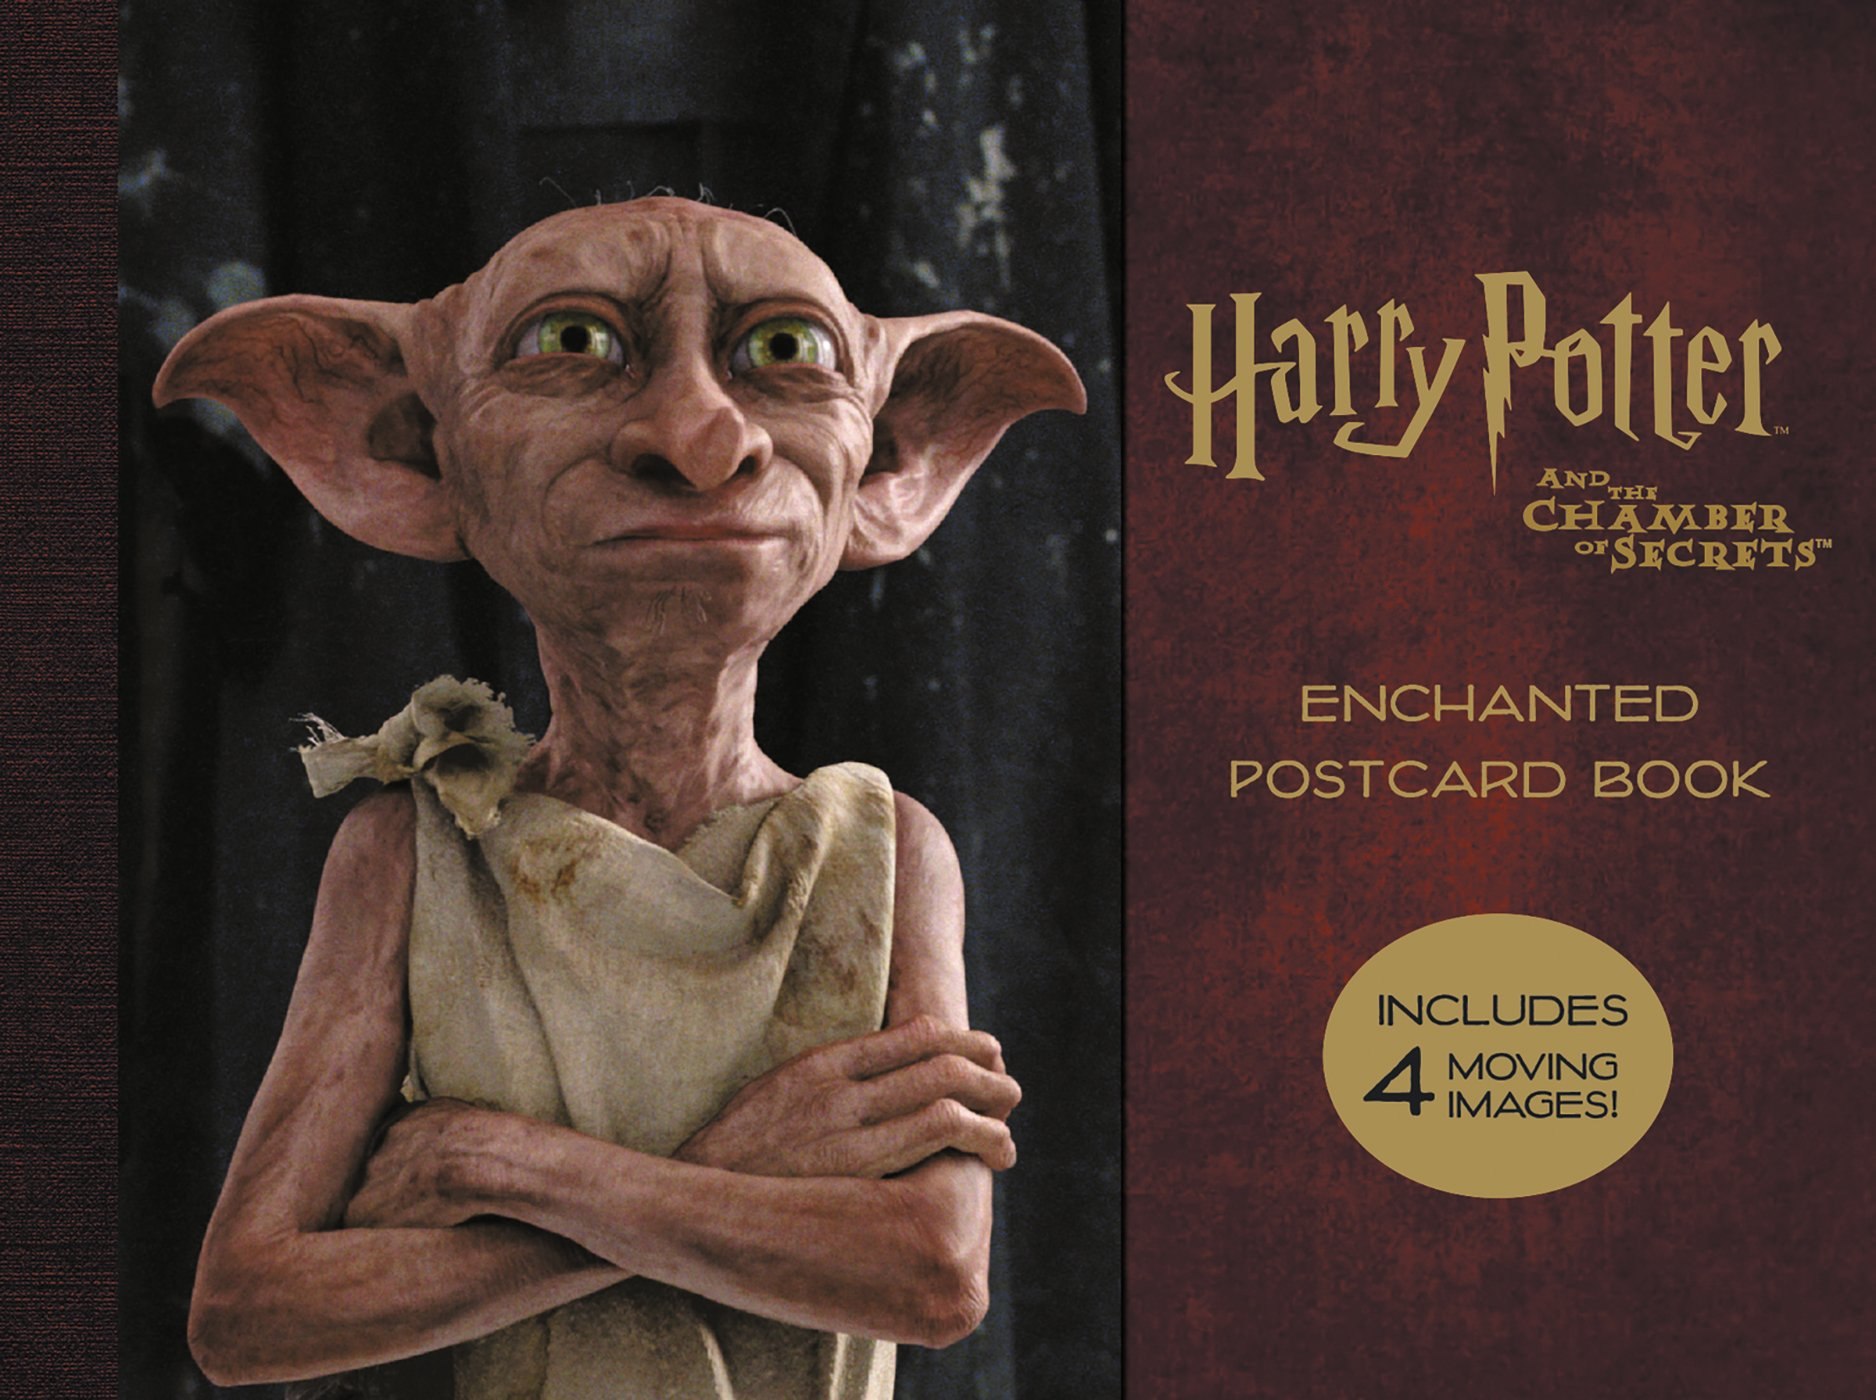 Harry Potter and the Chamber of Secrets Enchanted Postcard Book enchanted forest 20 postcards